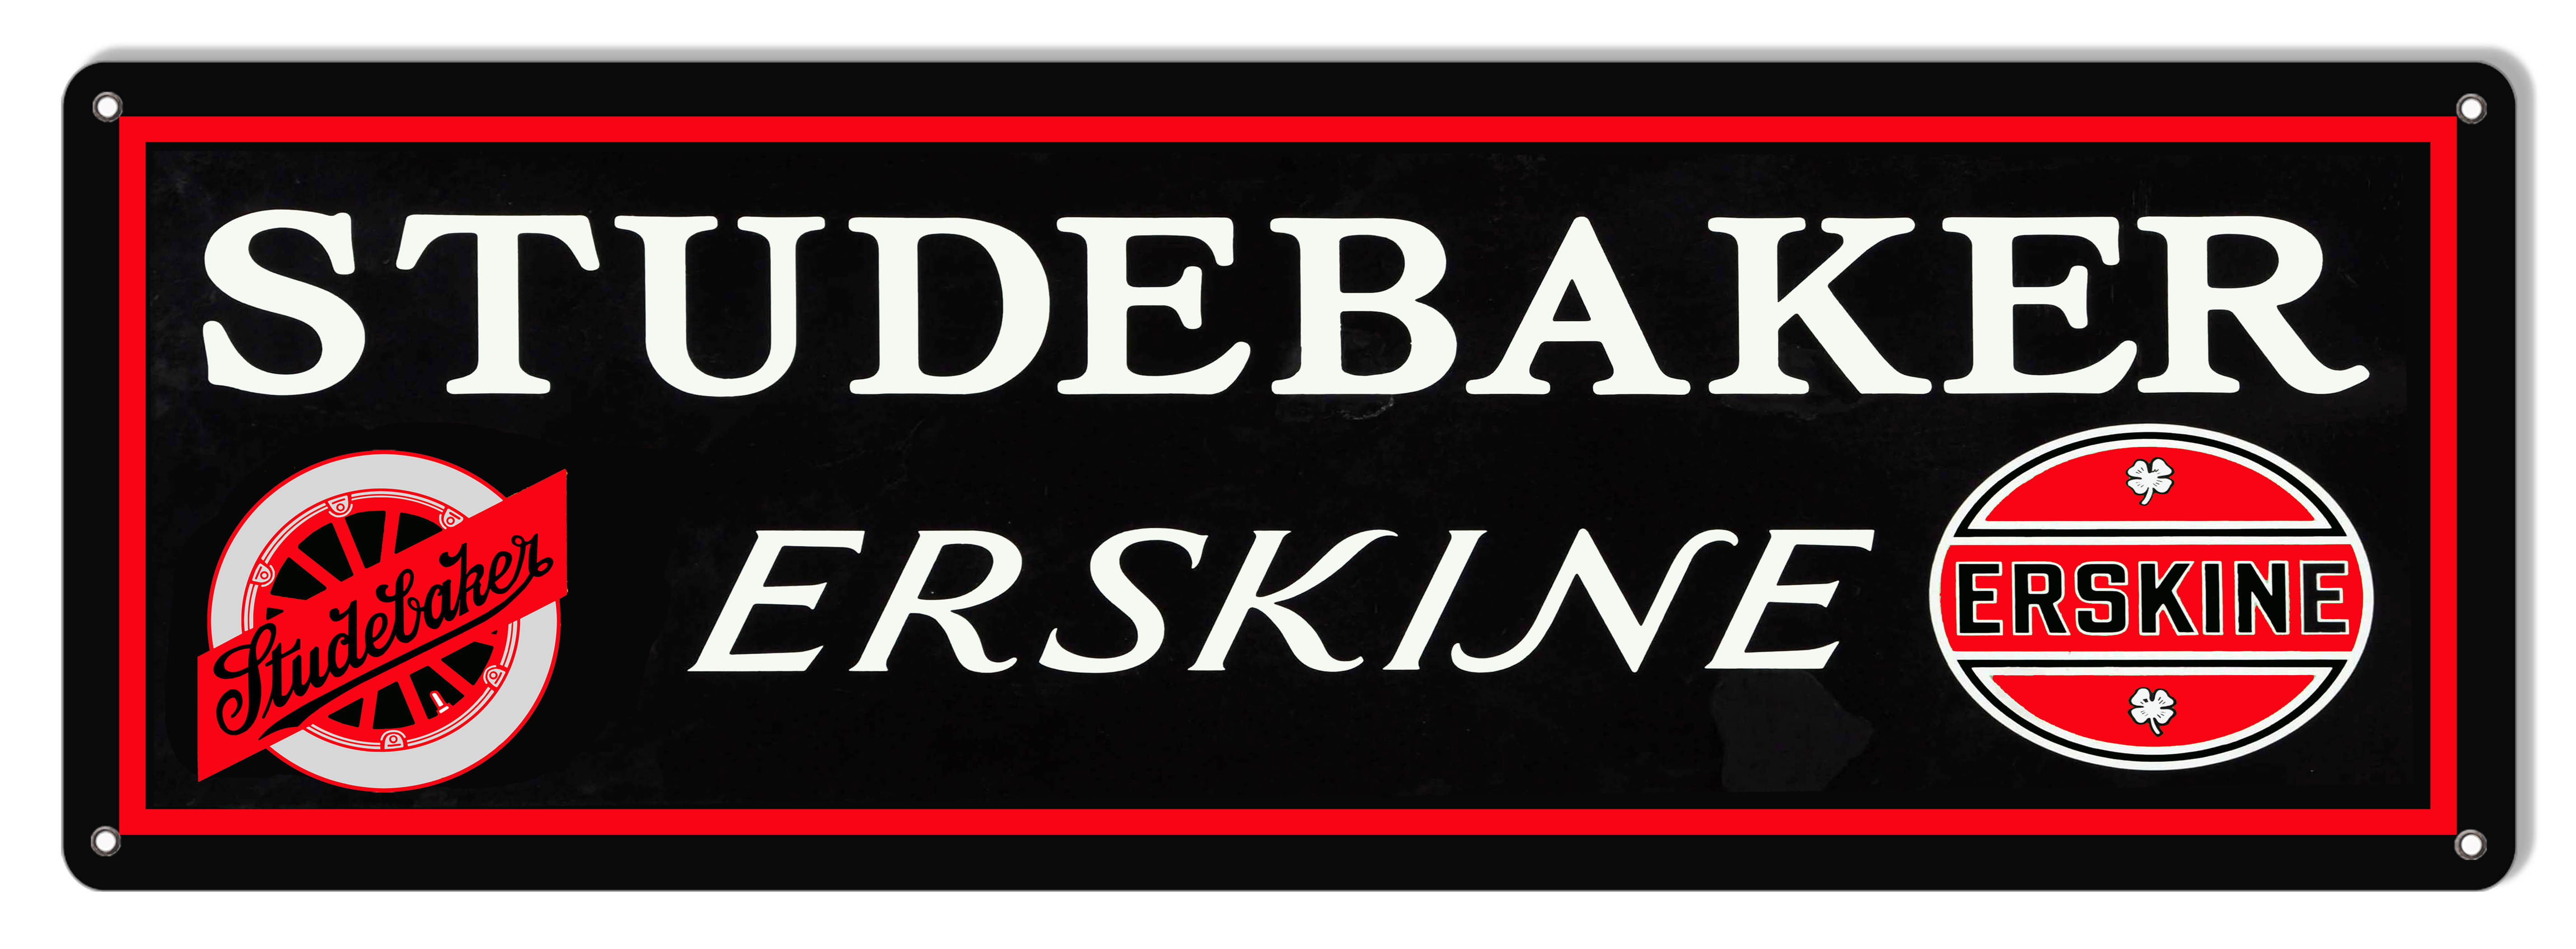 Studebaker Erskine Car Large Motor Oil Garage Art Sign 8x24 Reproductions